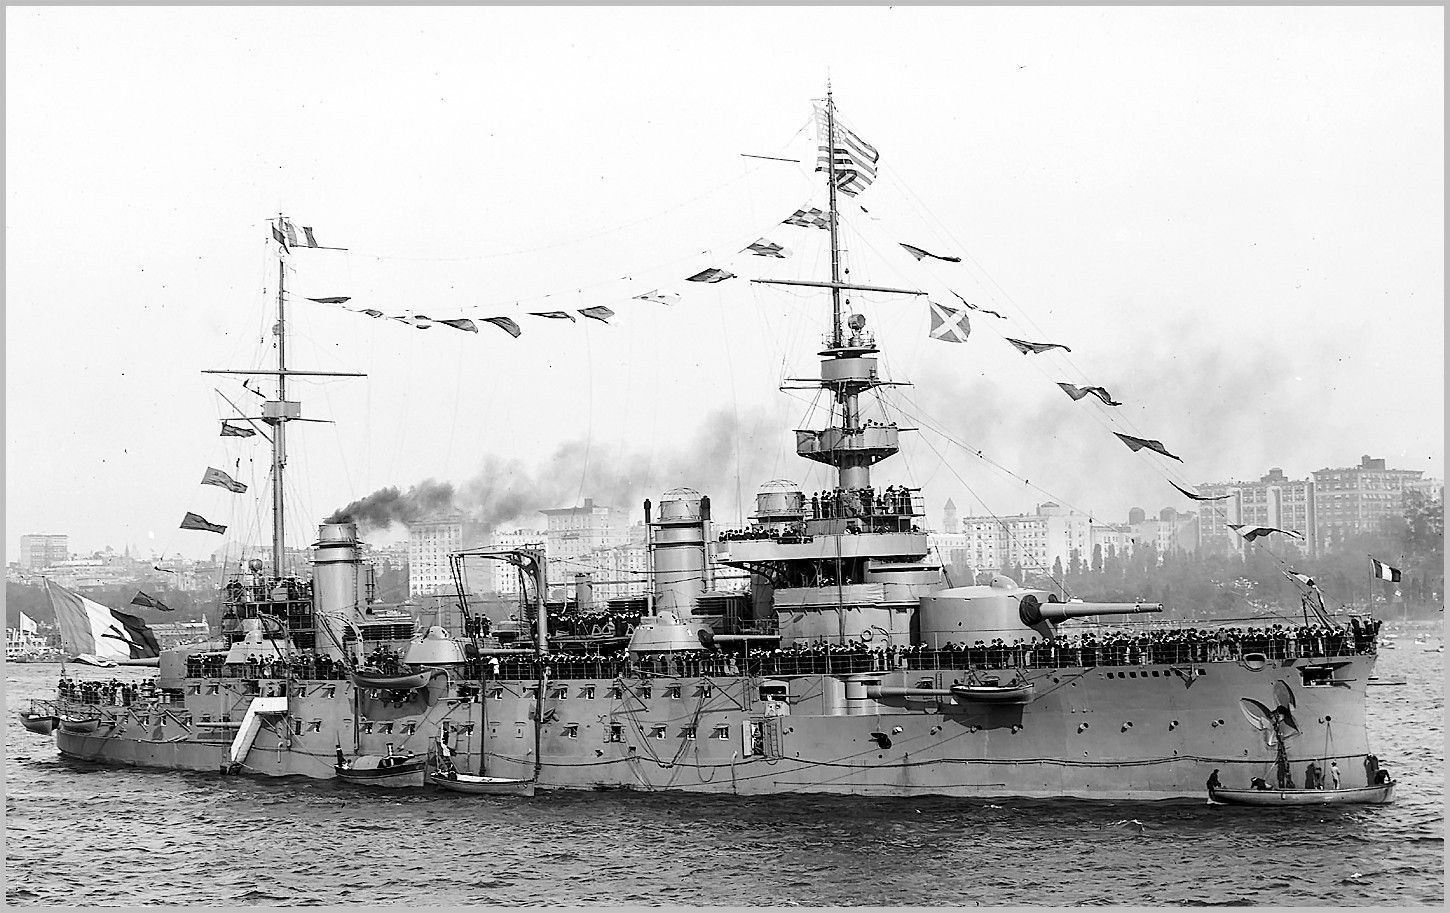 French predreadnought battleship Justice on the Hudson River in 1909.